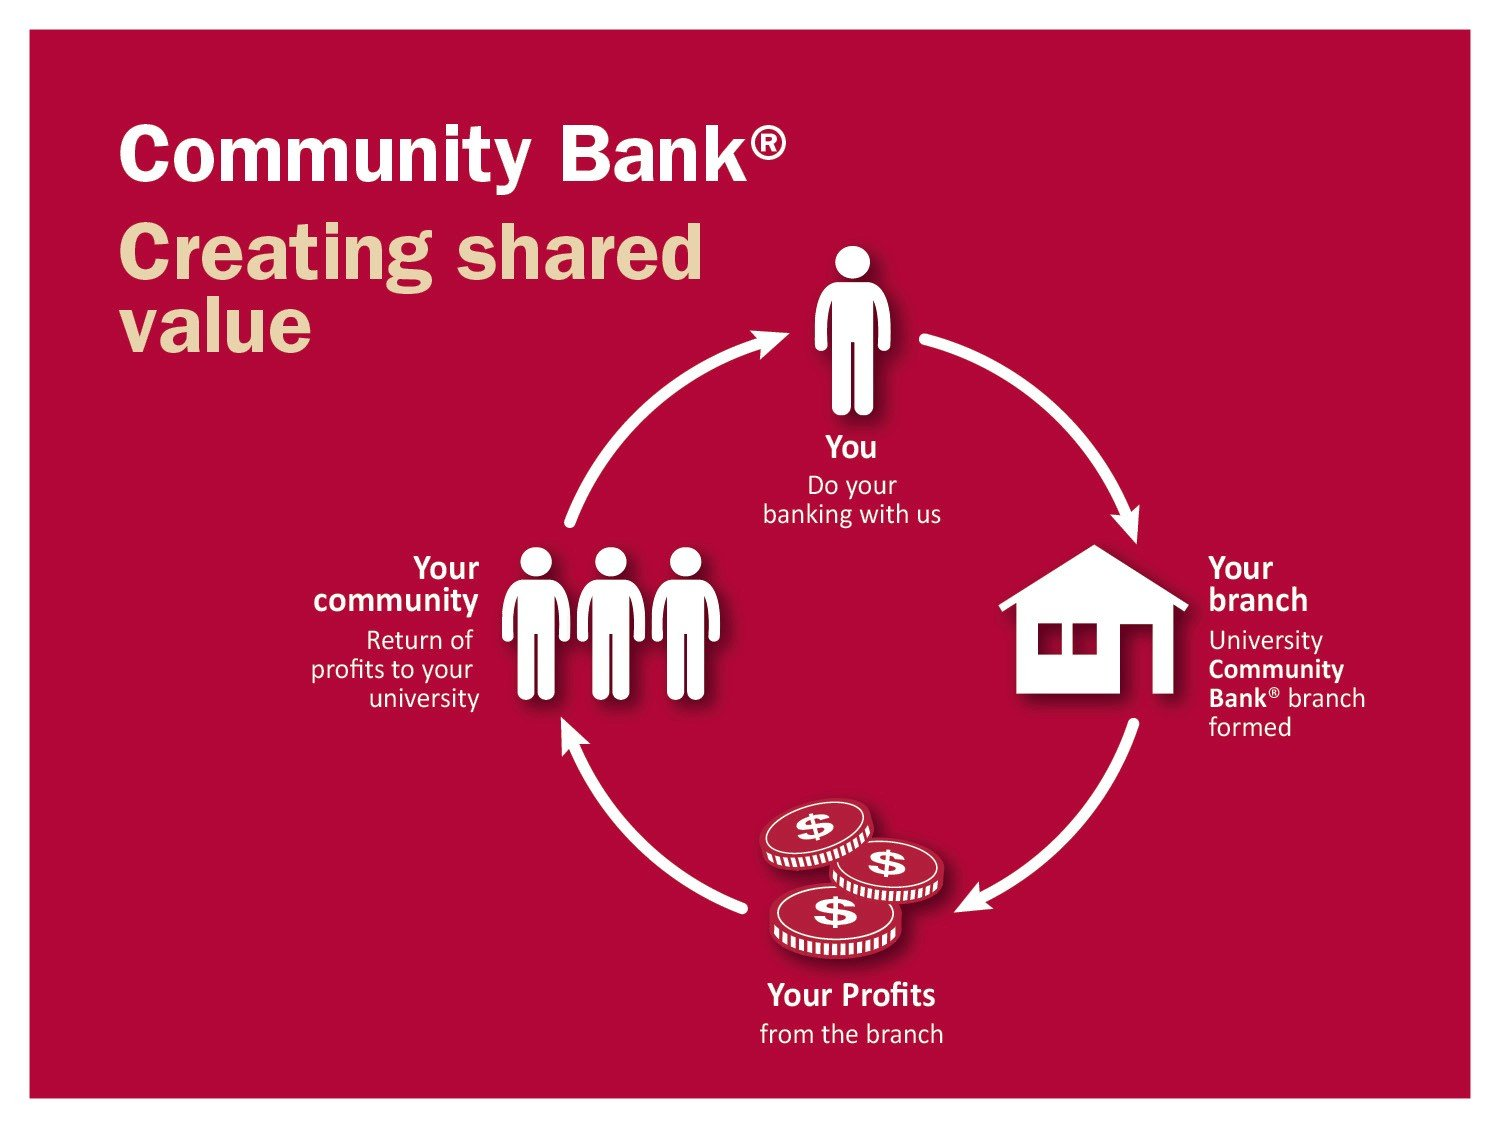 Deakin University Community Bank diagram